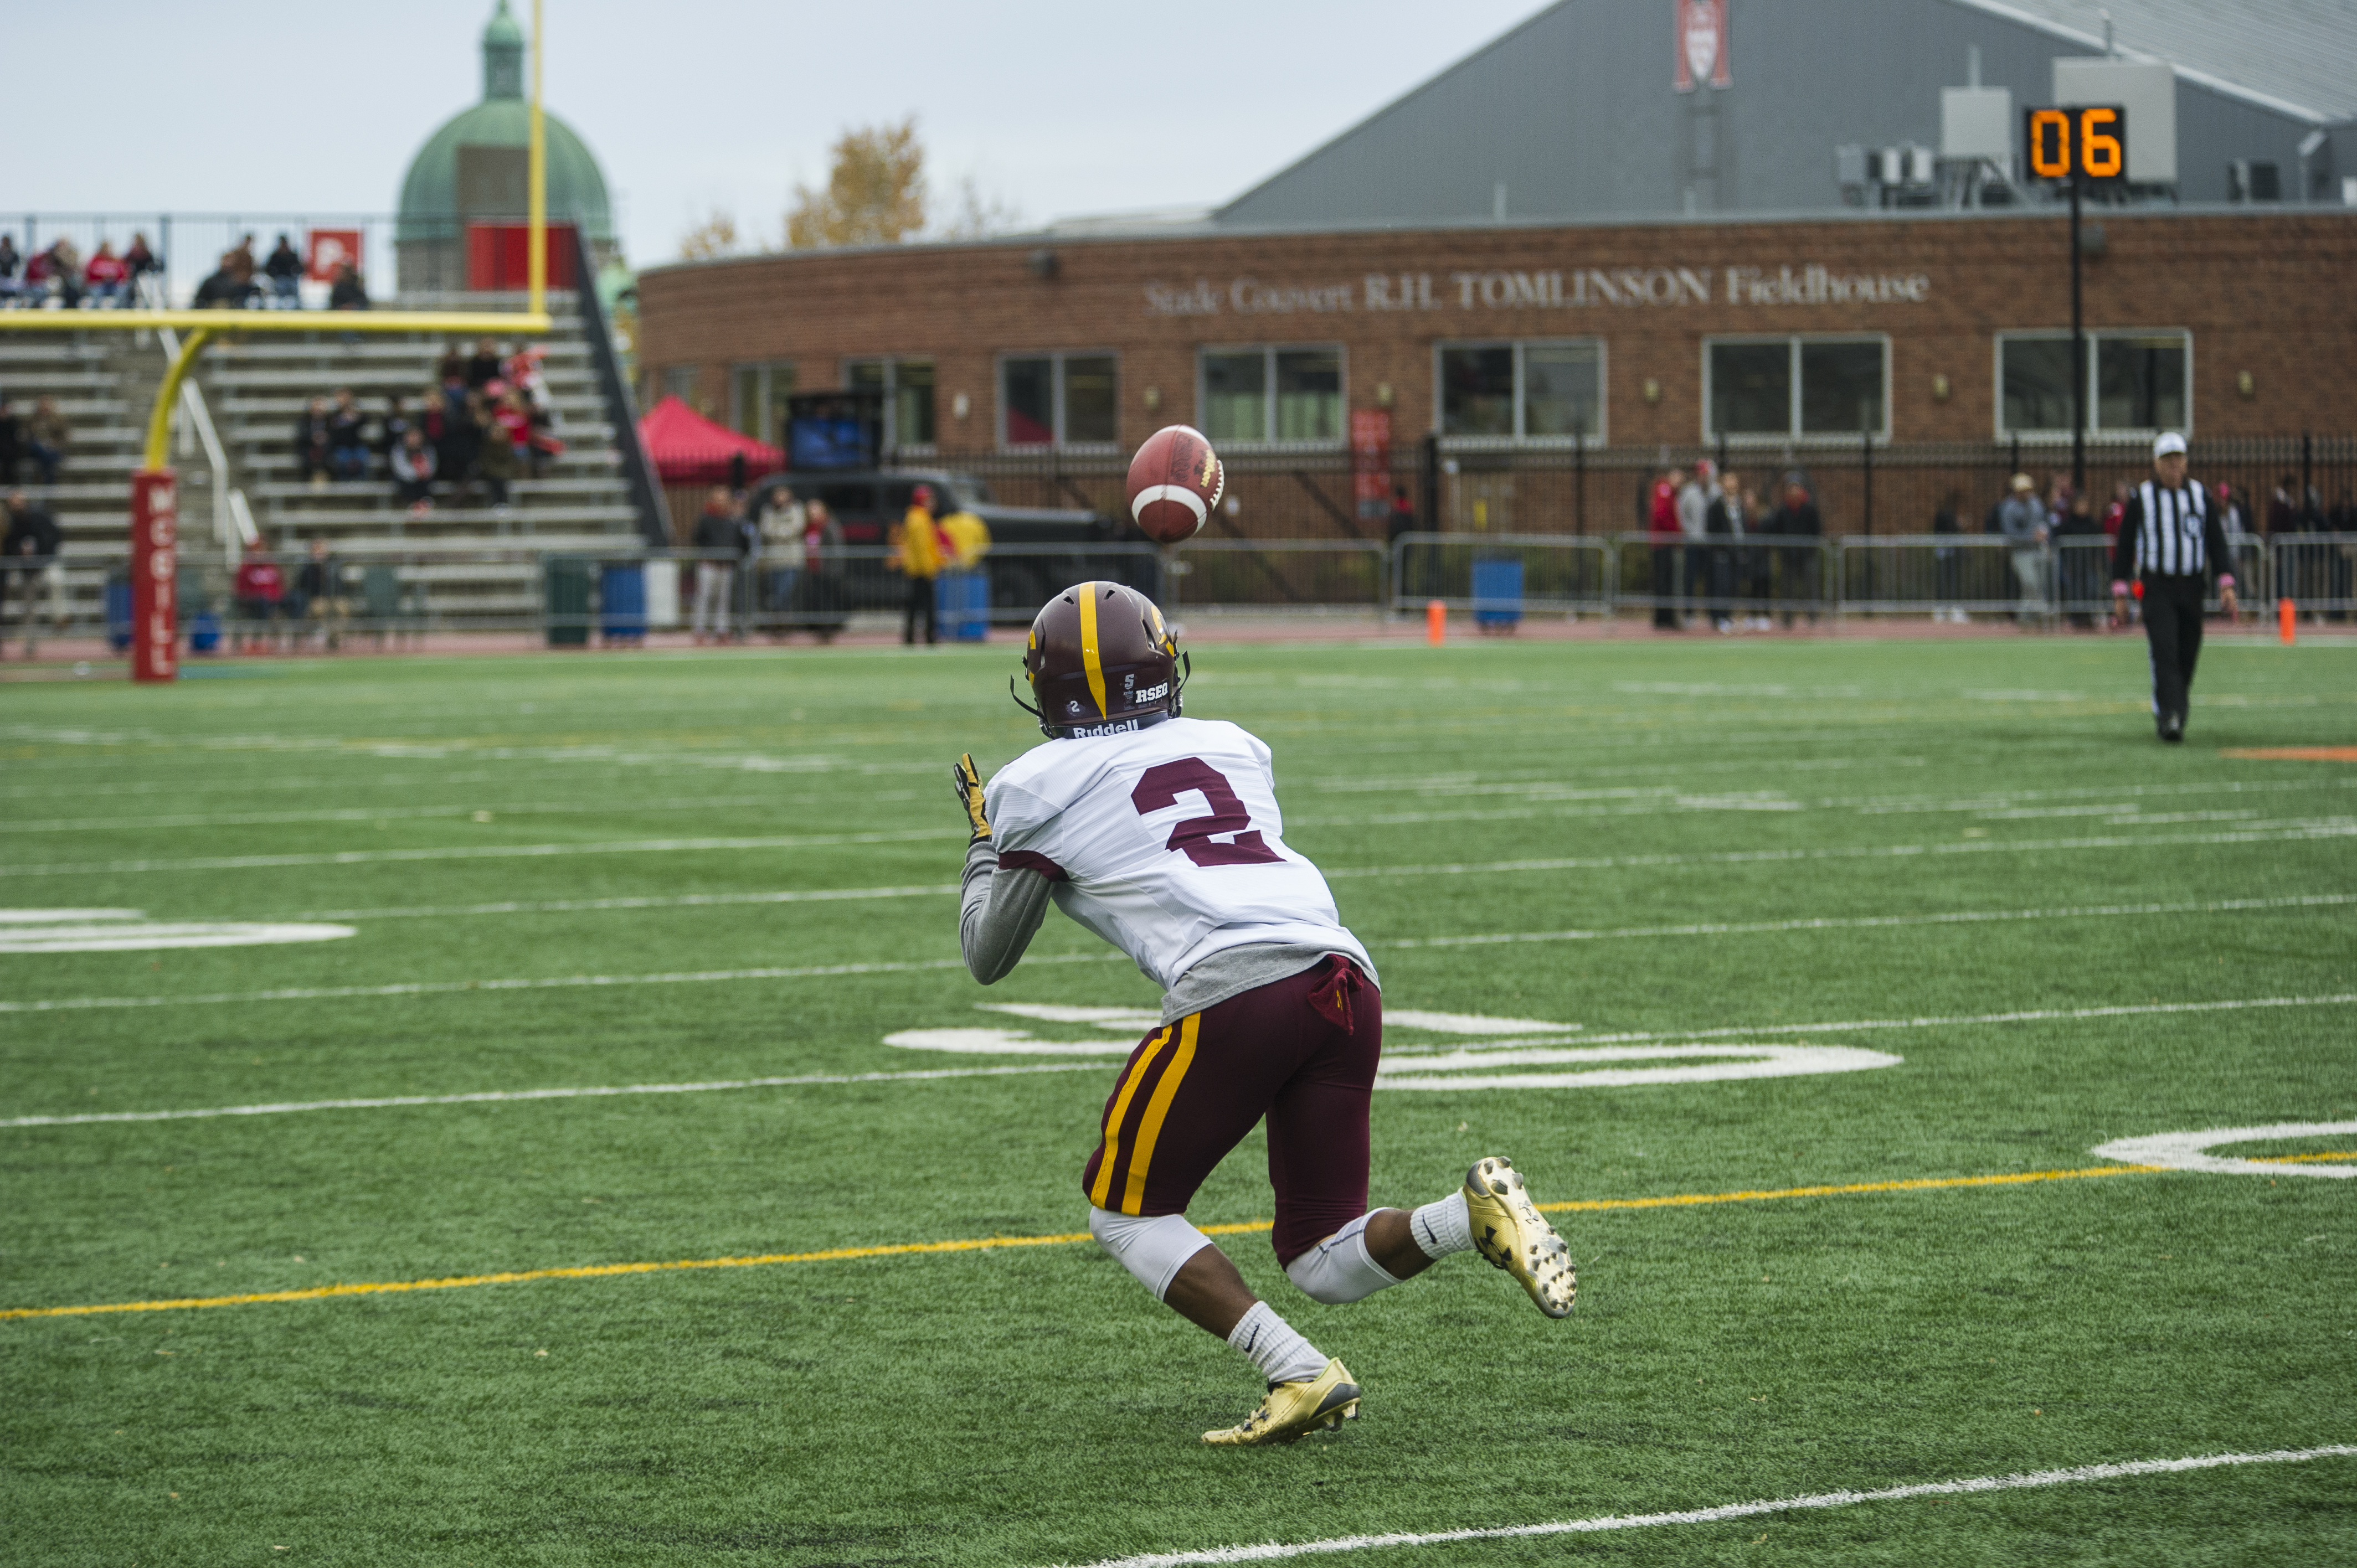 Justin Julien prepares to catch a pass with no men around him. Photo by Andrej Ivanov.